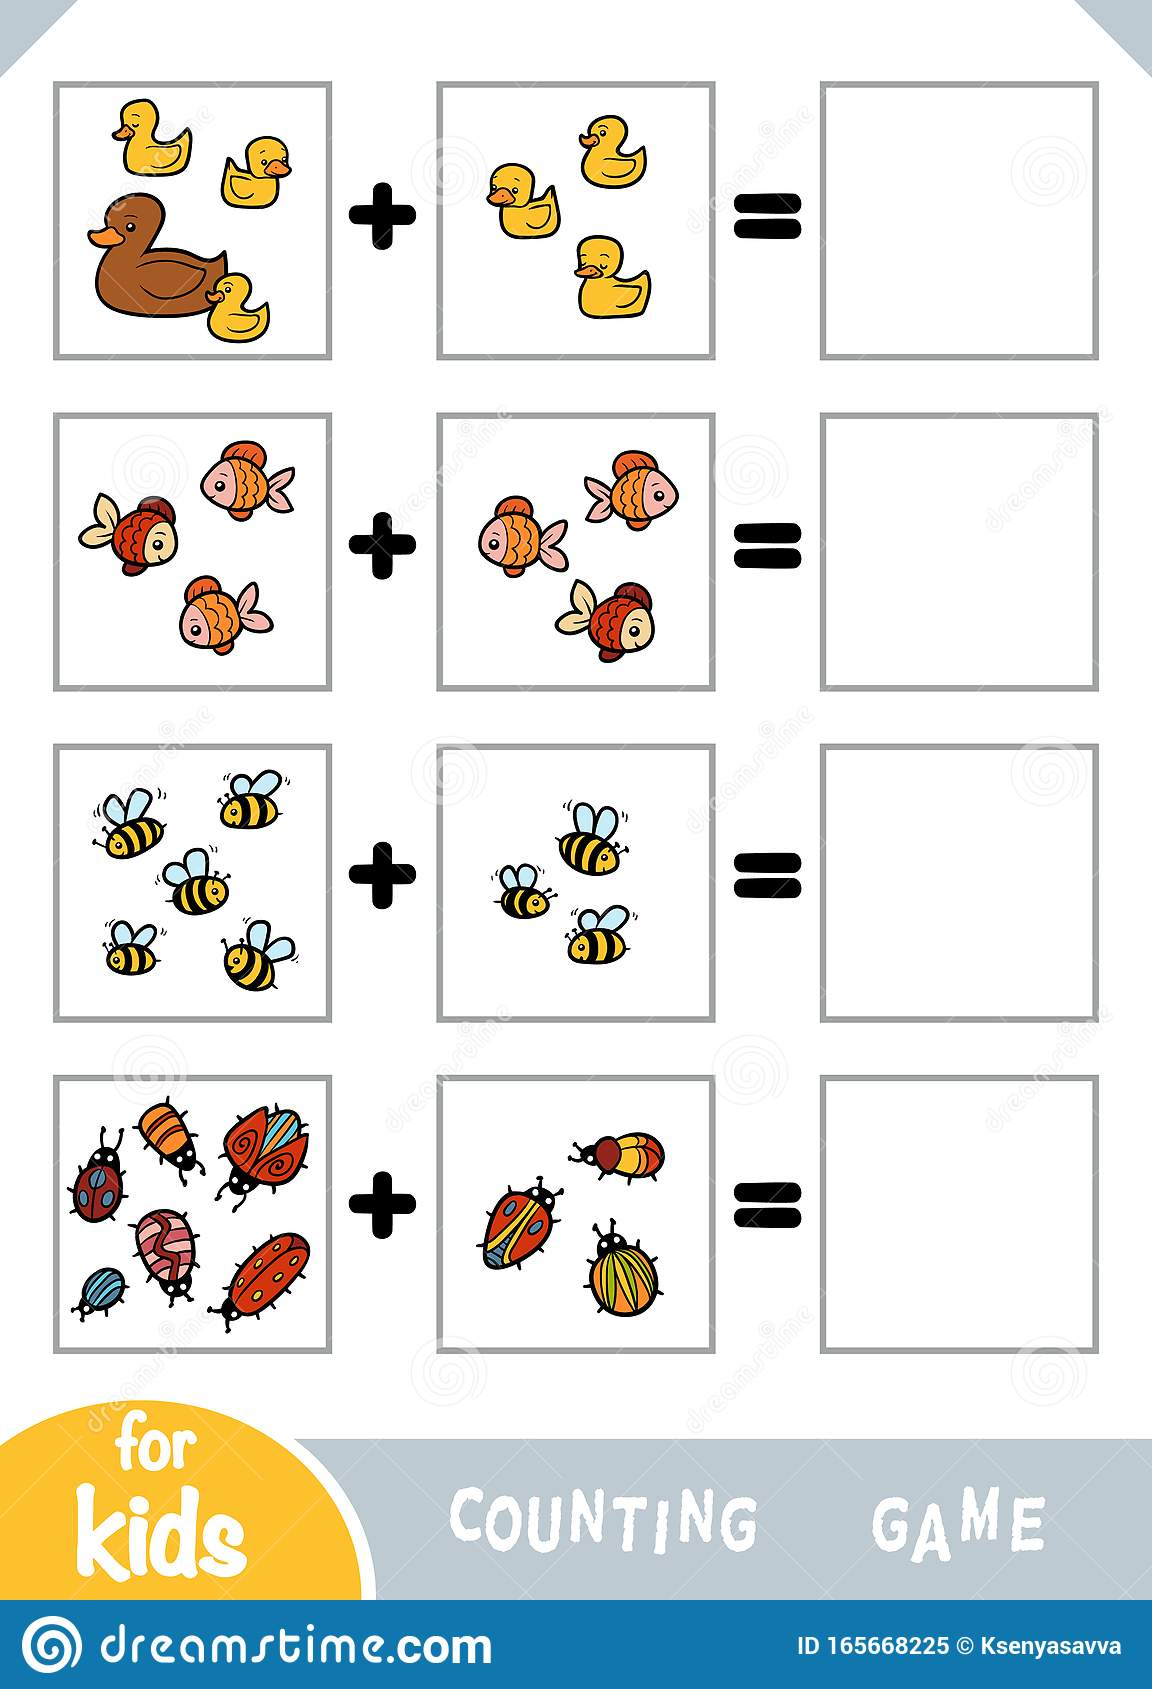 Counting Game For Preschool Children Count The Animals In